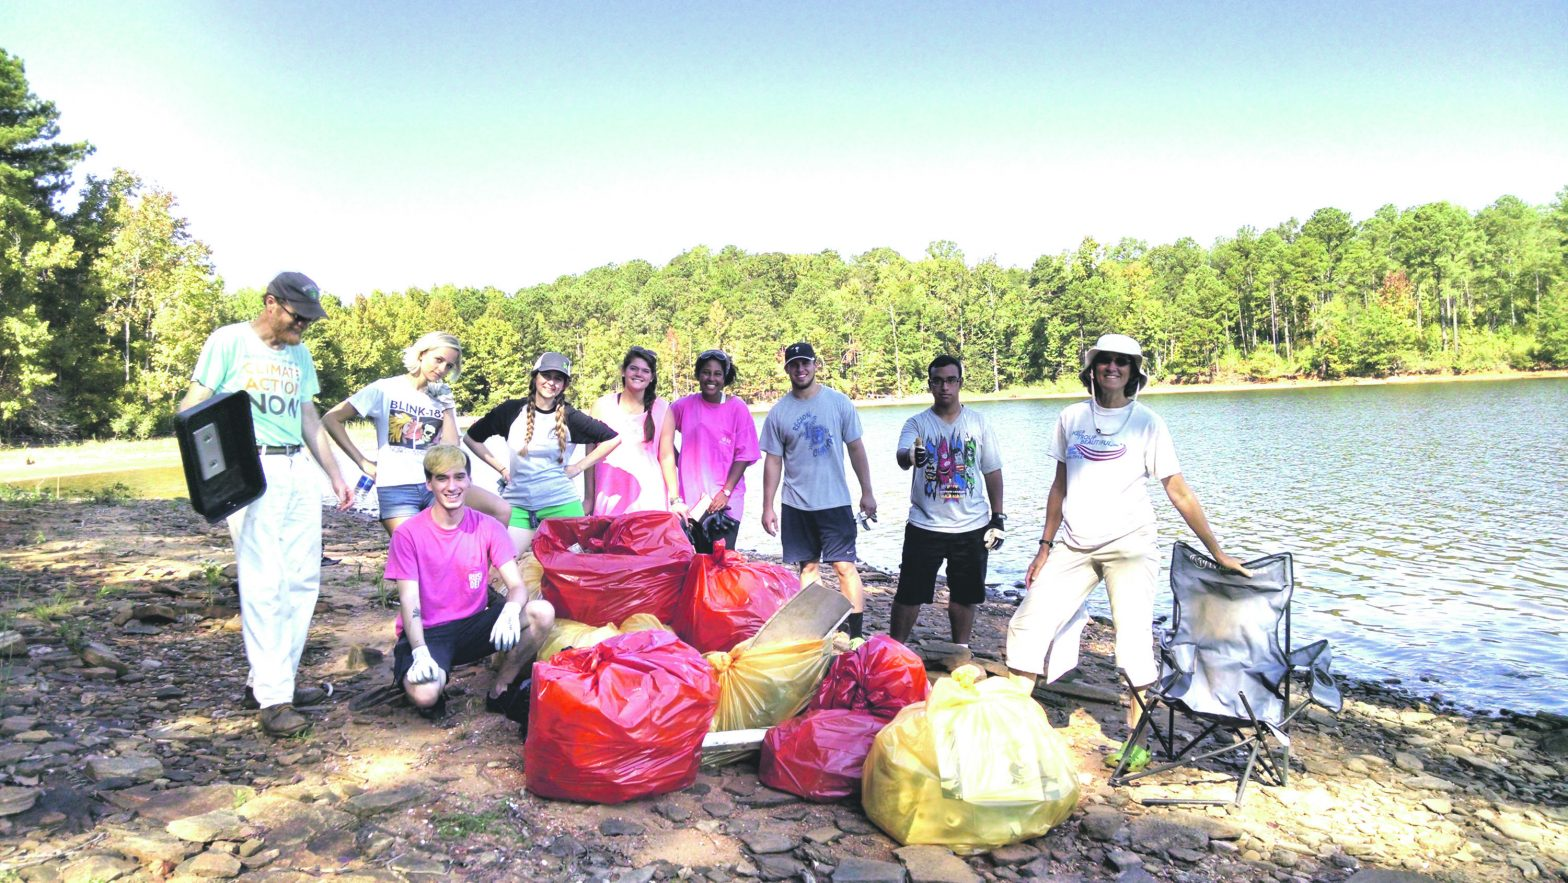 National Public Lands Day Success  With Approximately 100 Volunteers